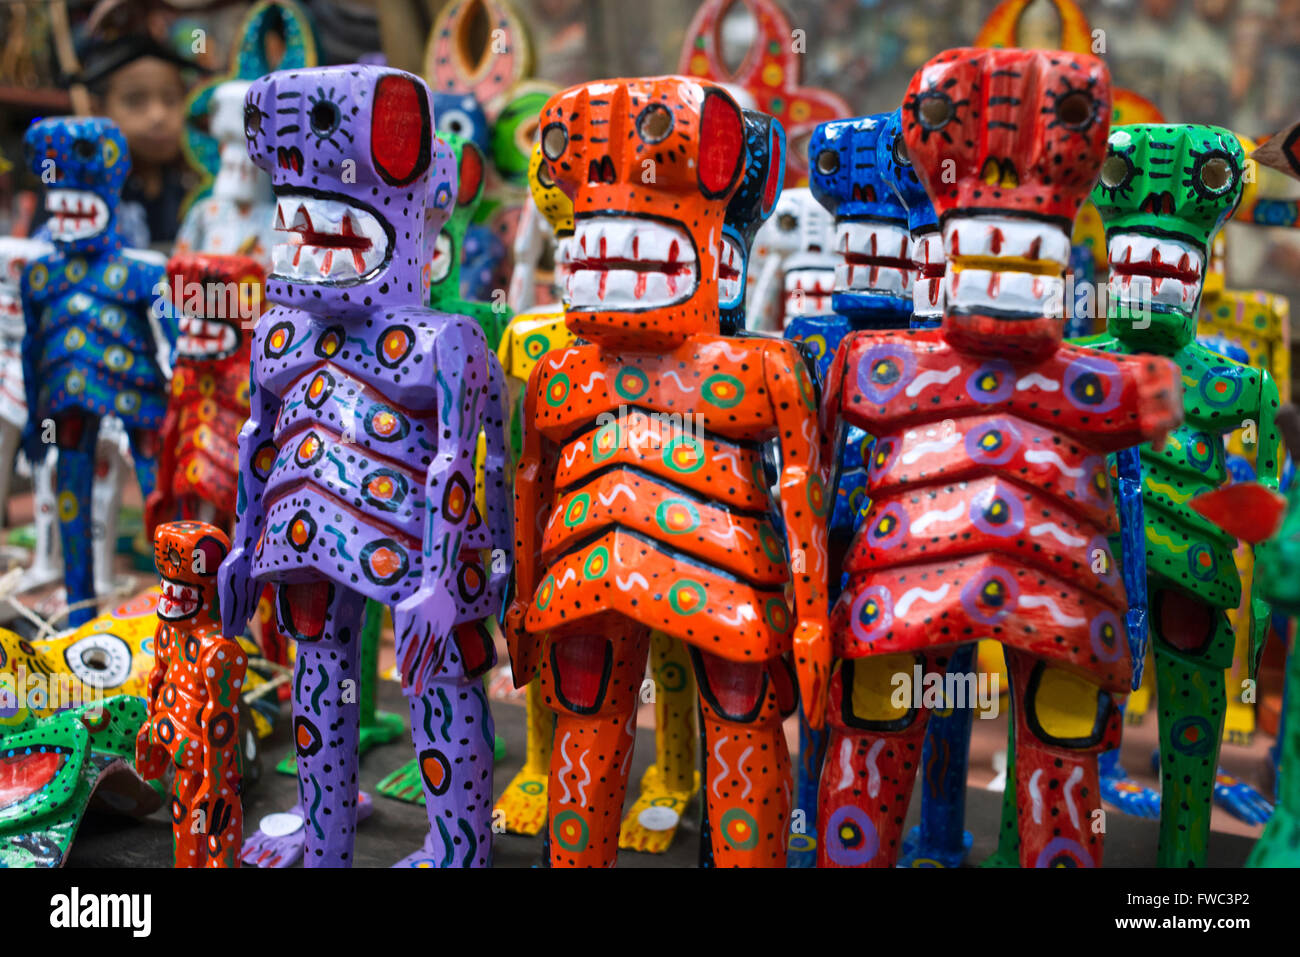 Nim Po't, souvenir shop in Antigua, Guatemala. Typical painted dolls. Nimpot is a handicraft shop located in the heart of Antigu Stock Photo